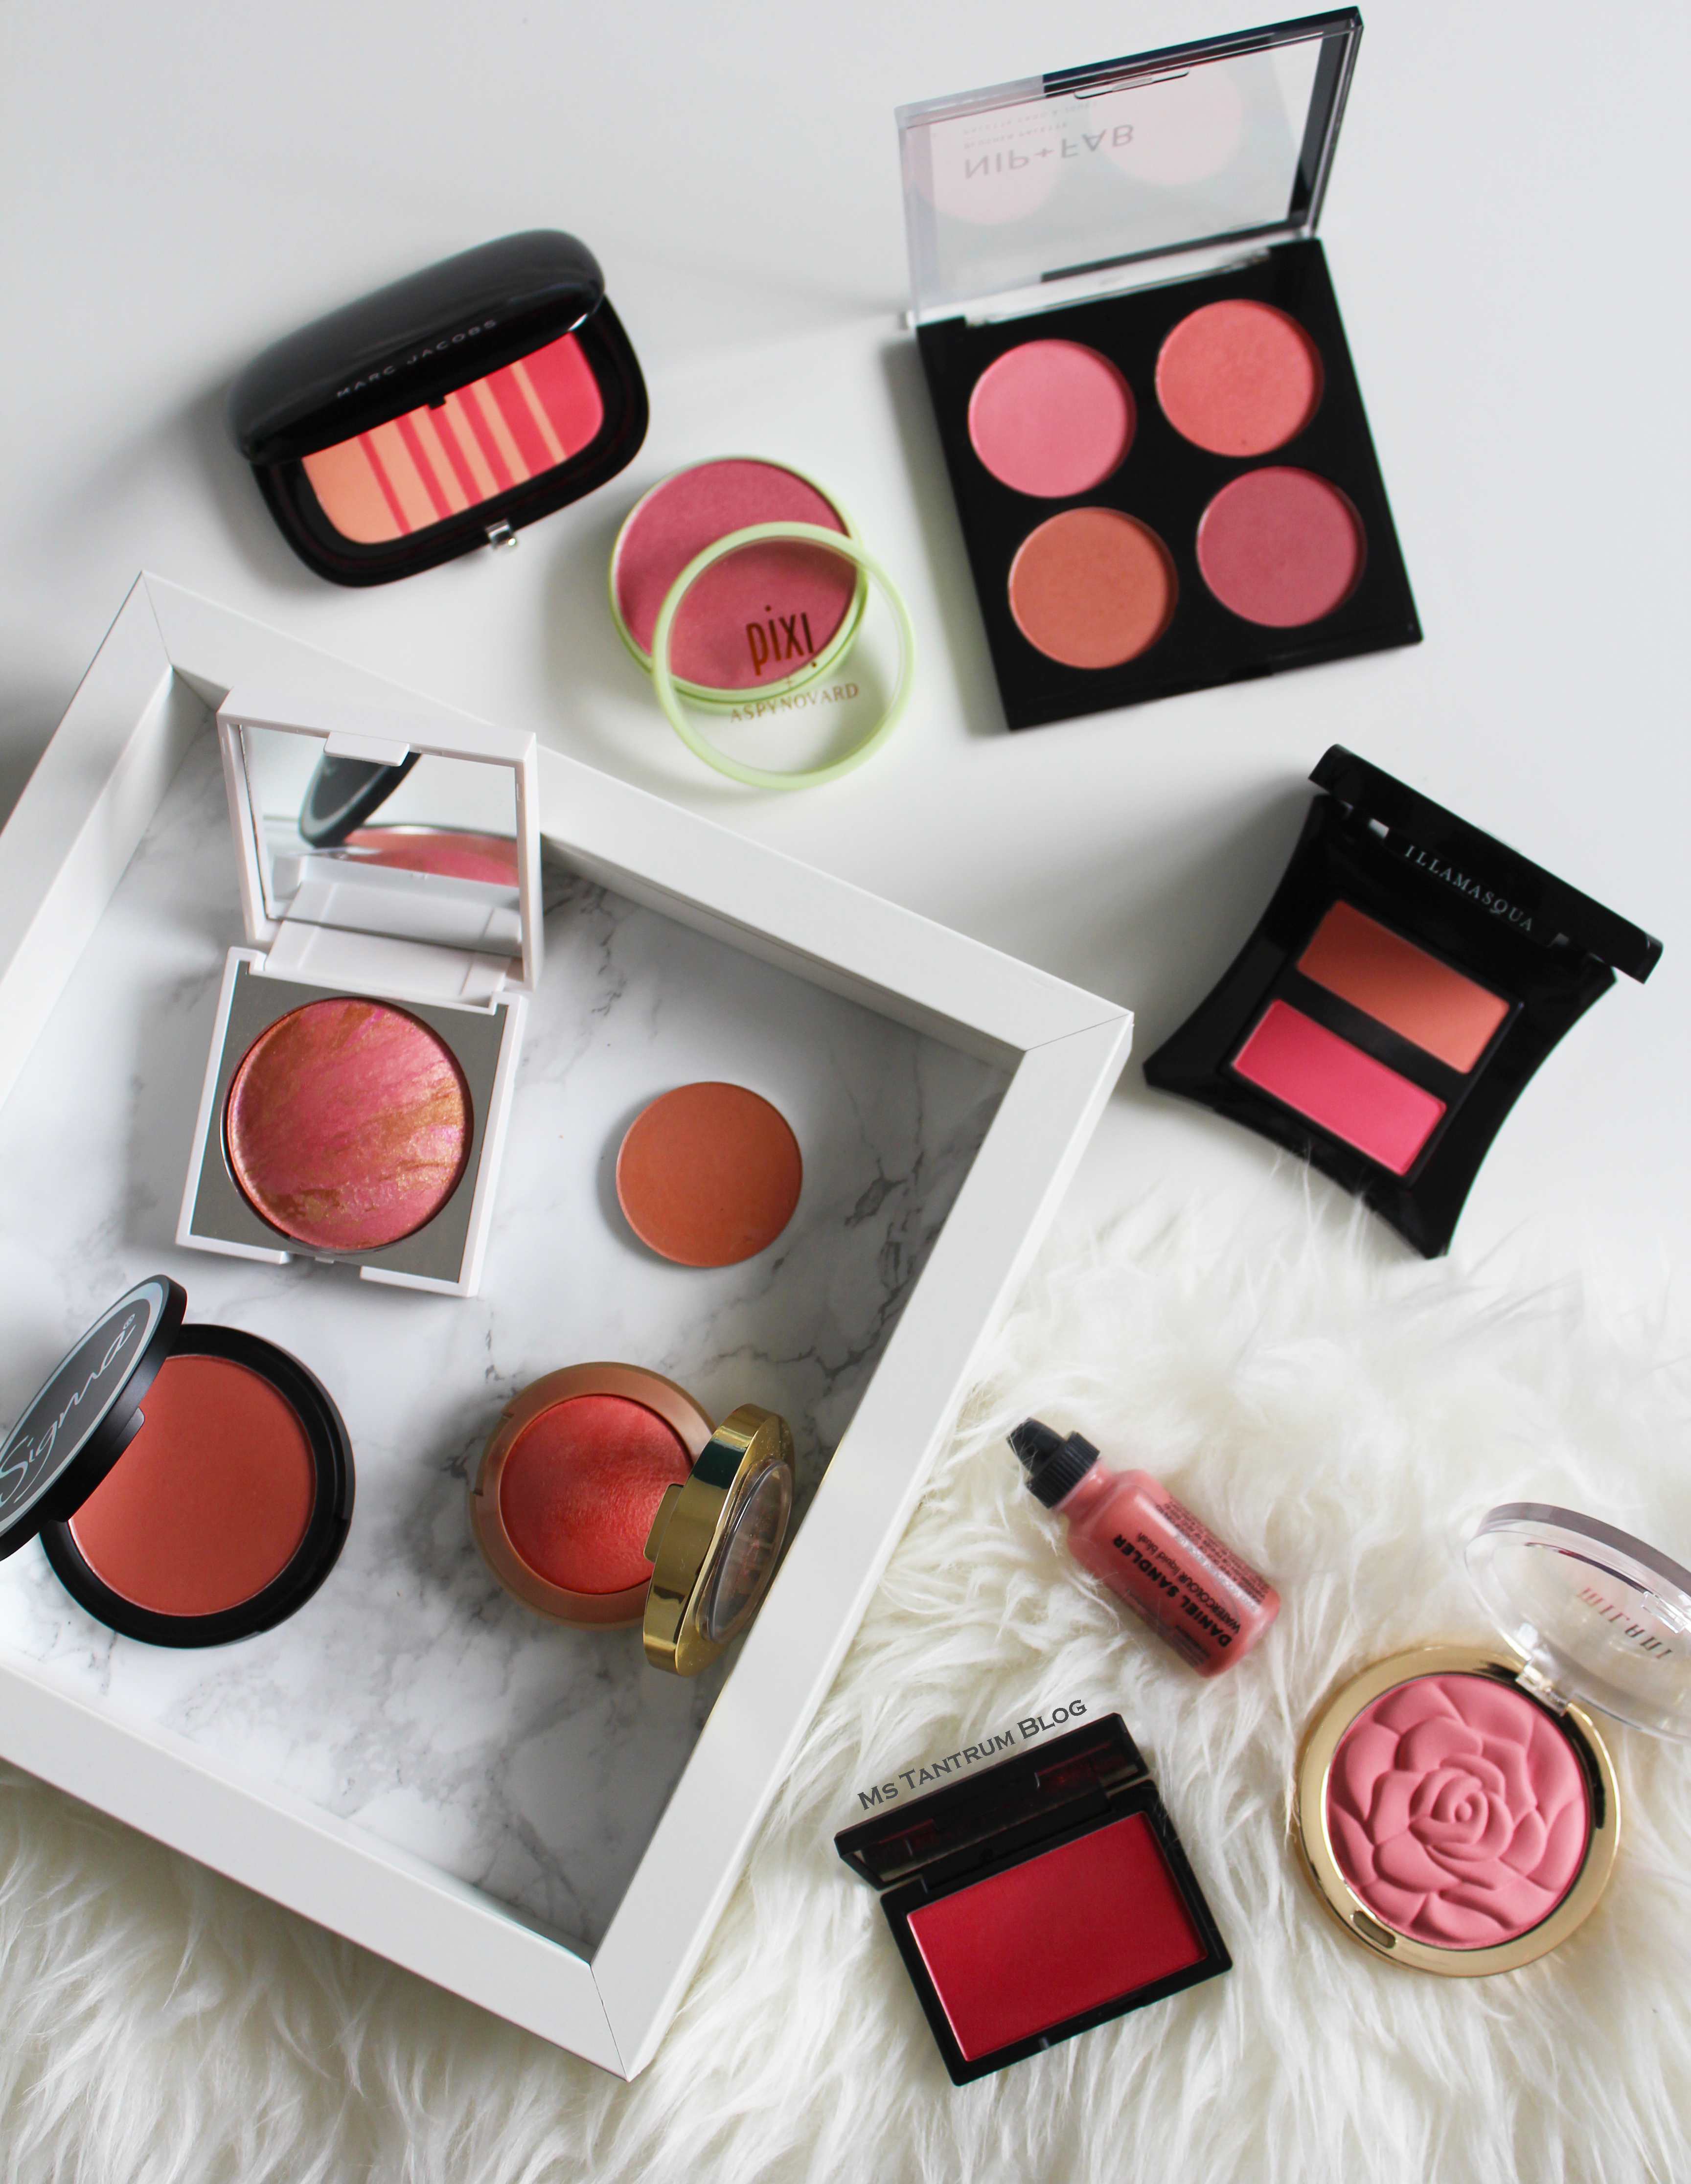 Blushes for Medium Skintone, Blushes for dark skin tone, blushes for olive skin tone, blushes for deep skin tone, blushes for NC42, Blushes for NC47, Blushes for light skin tone